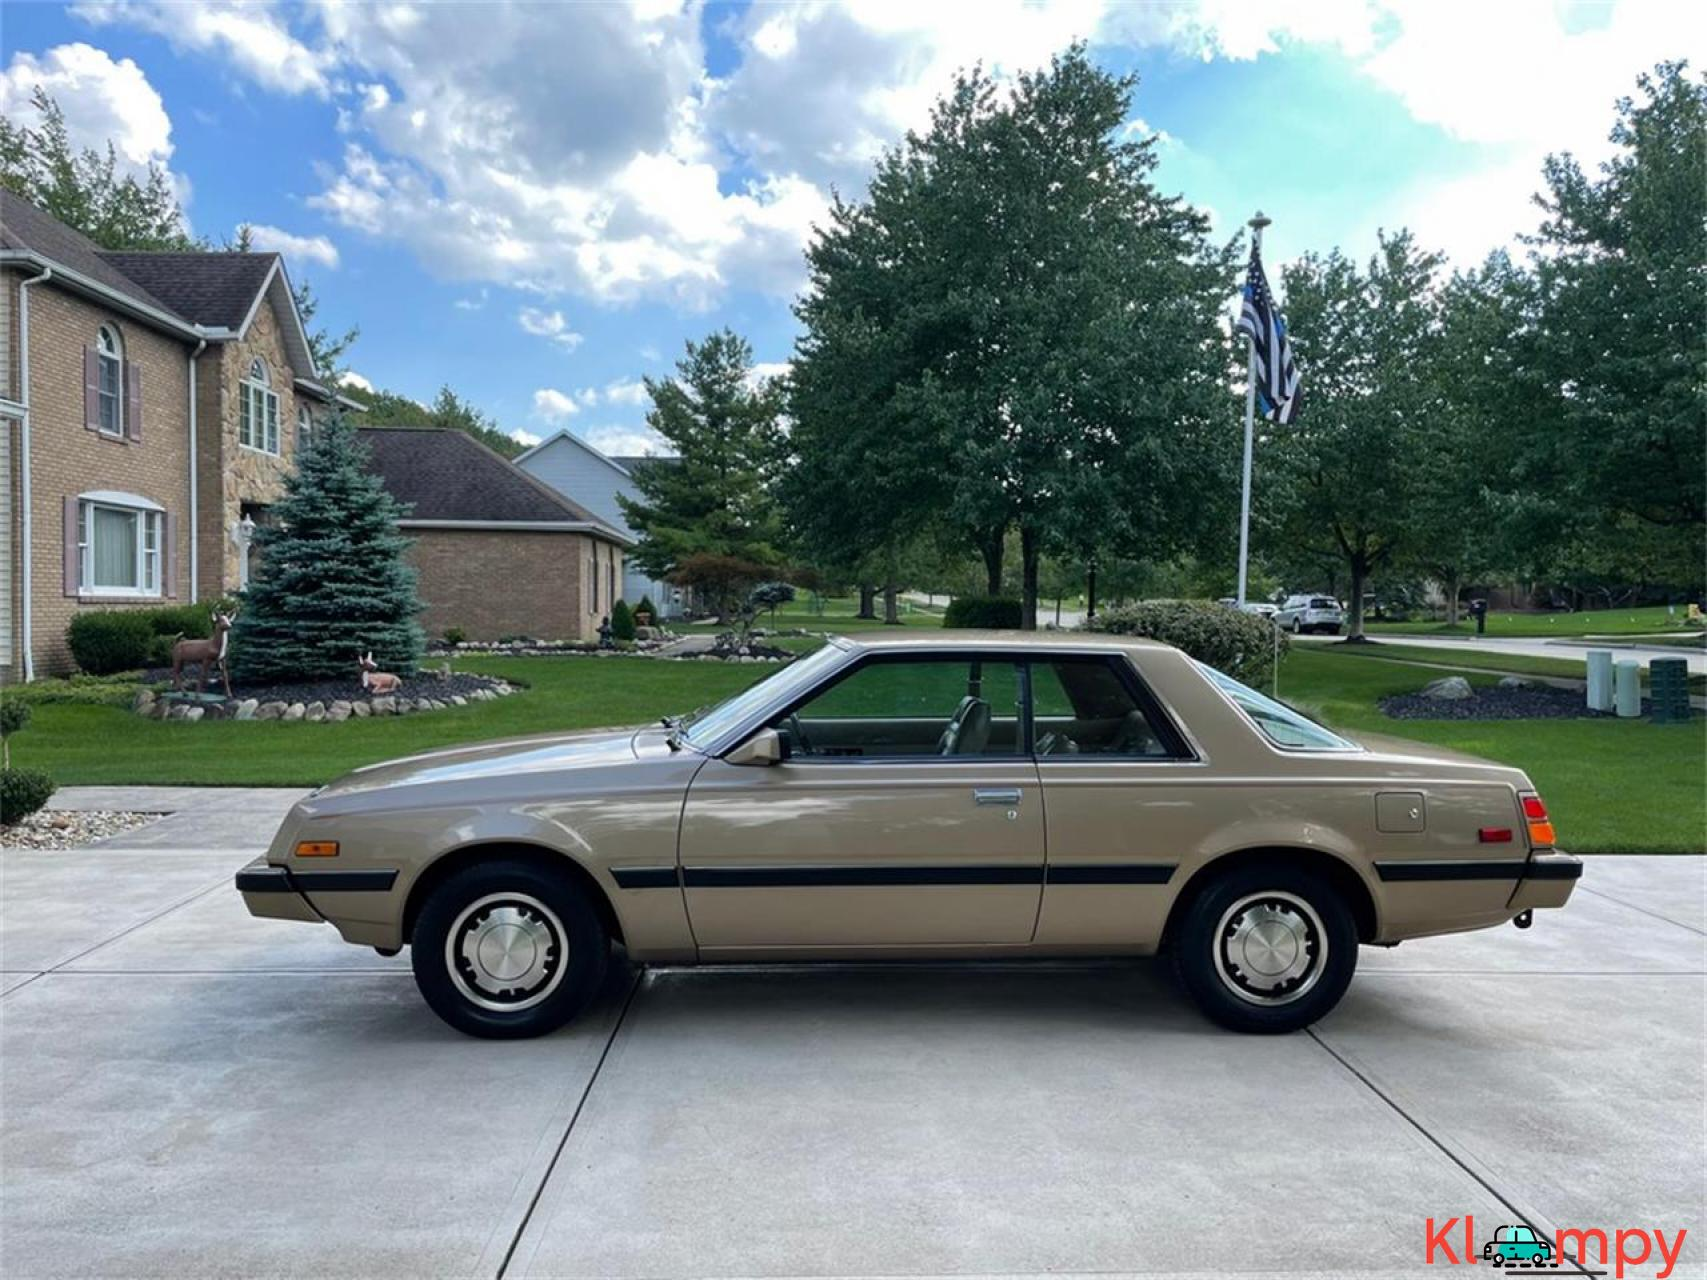 1983 Plymouth Sapporo 2.6L Engine - 3/18